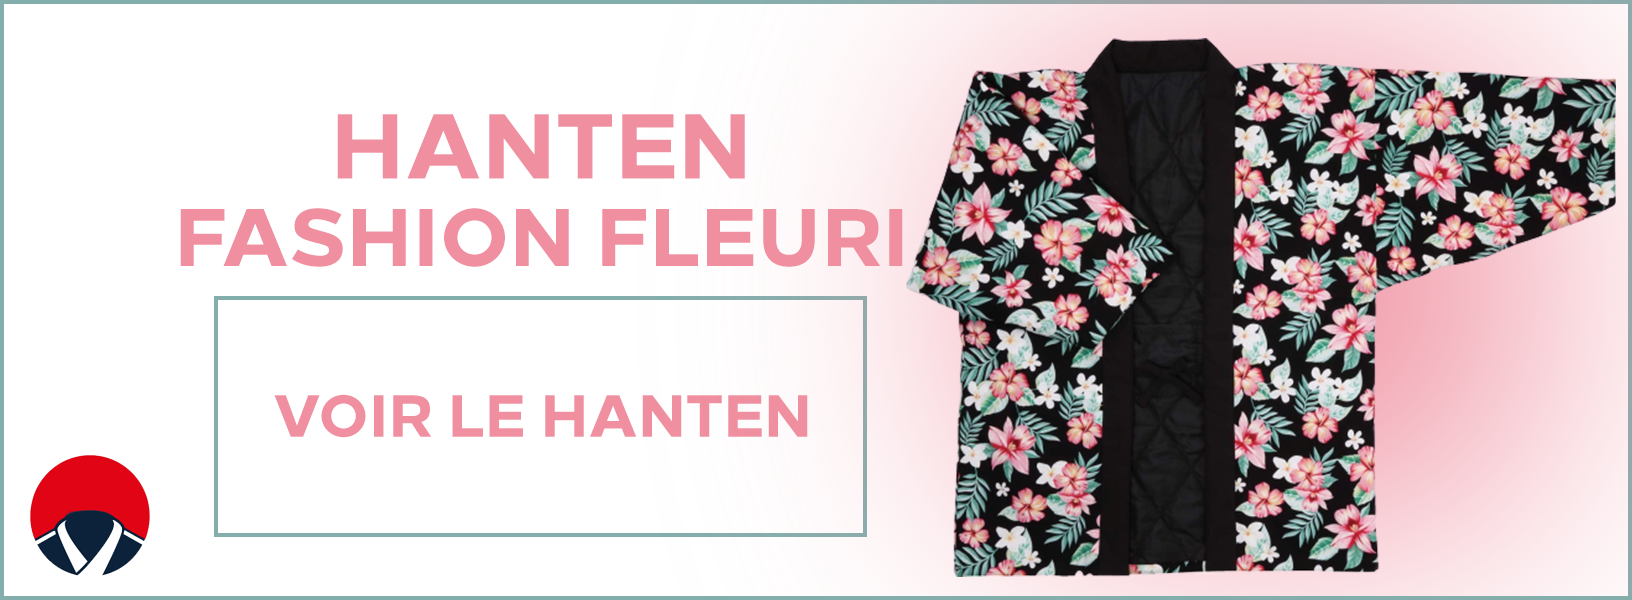 Hanten Fashion Fleuri